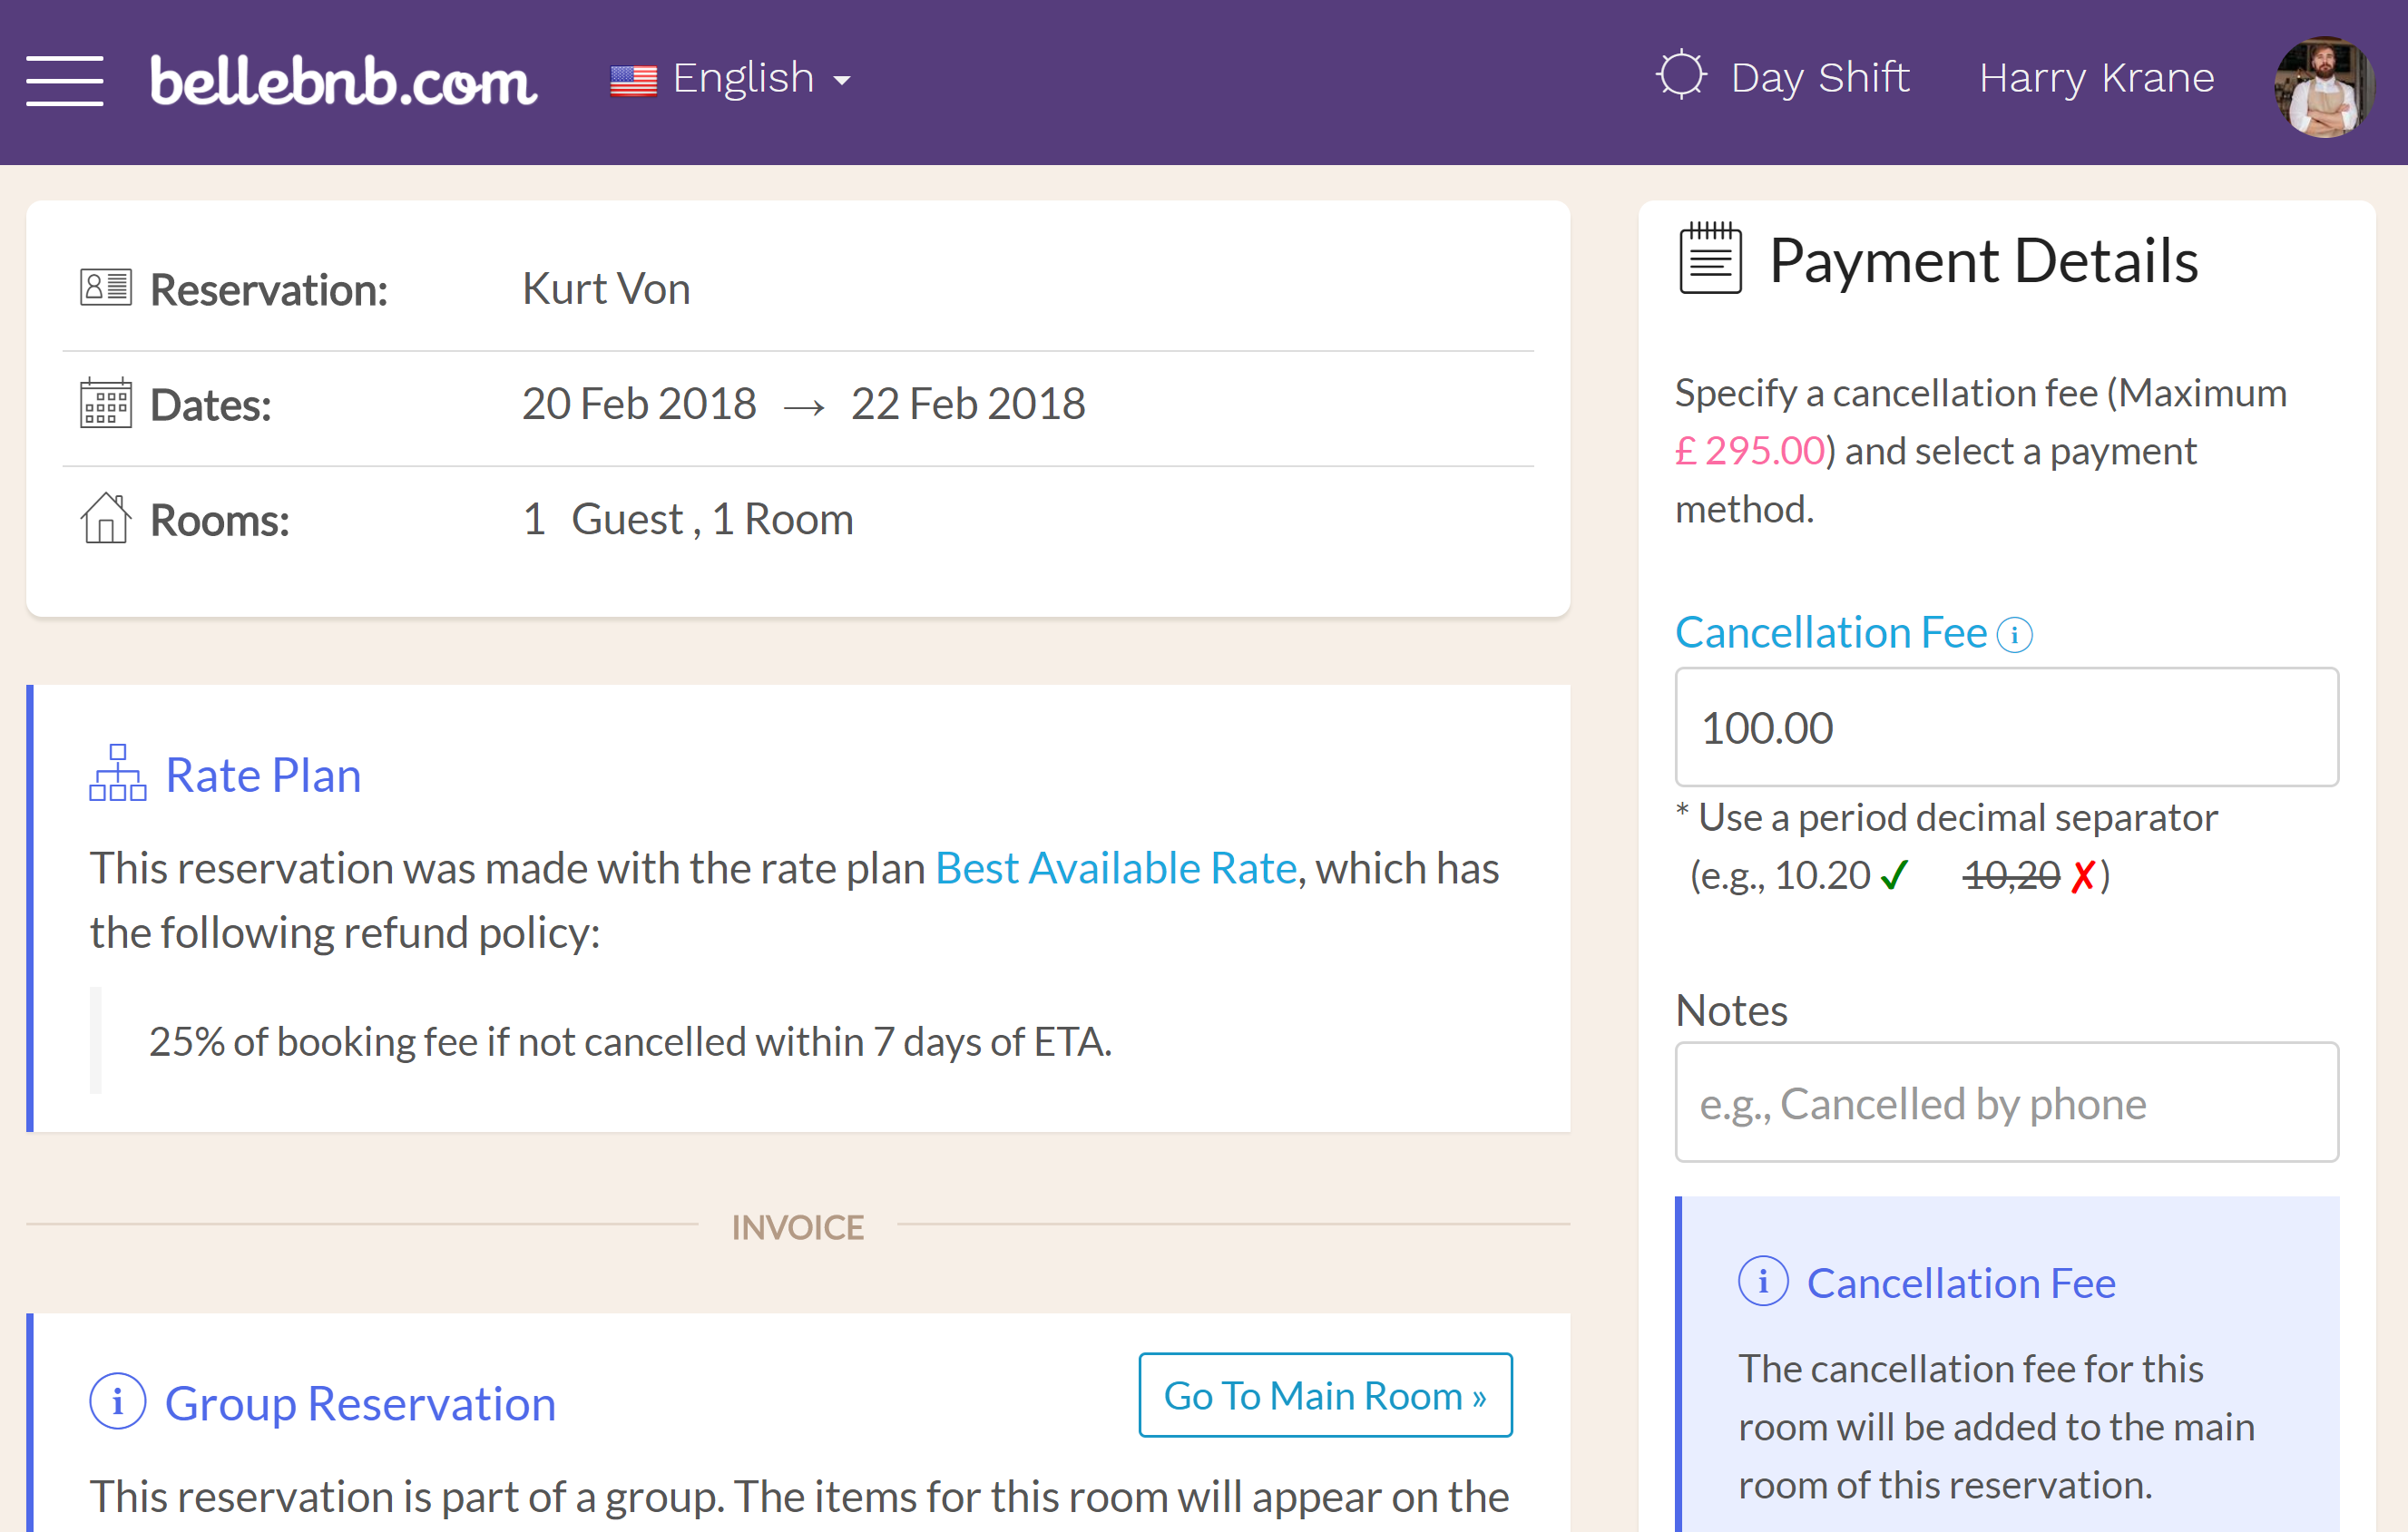 Cancel a Room in a Group To cancel a room in a group, select the booking in your calendar, then go to 'Actions > Cancel this Room.' Enter a cancellation fee, if any, then click to cancel. The cancellation fee for this room will appear on the invoice of the main room for the group.